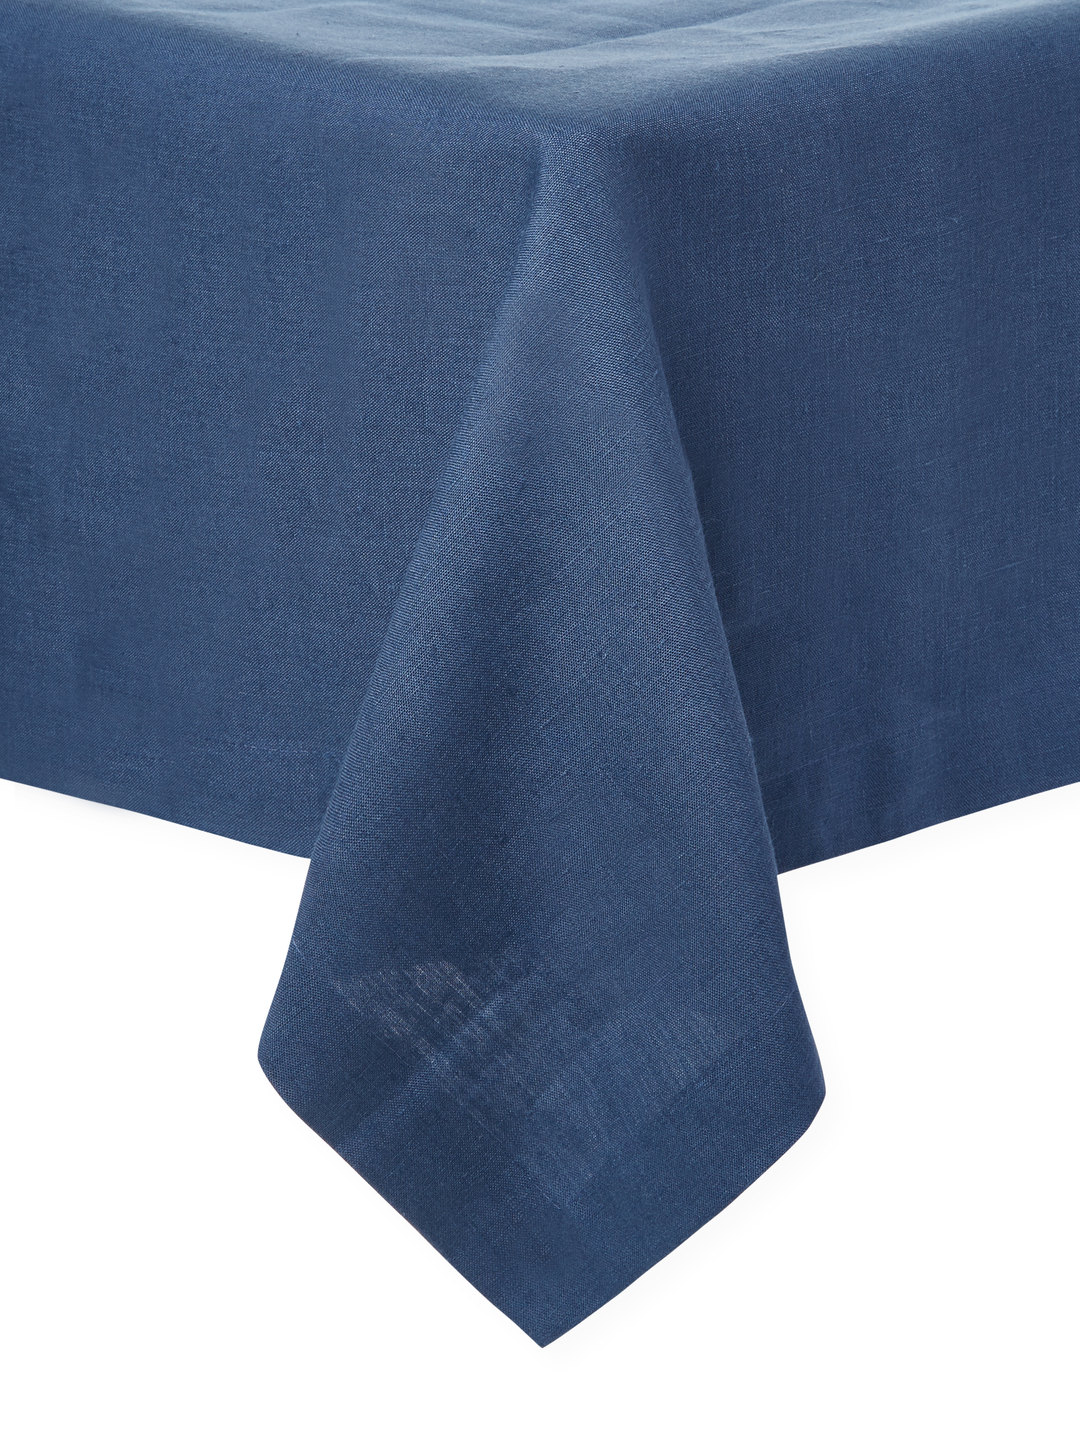 Riviera Navy 68 In X 120 In Tablecloth